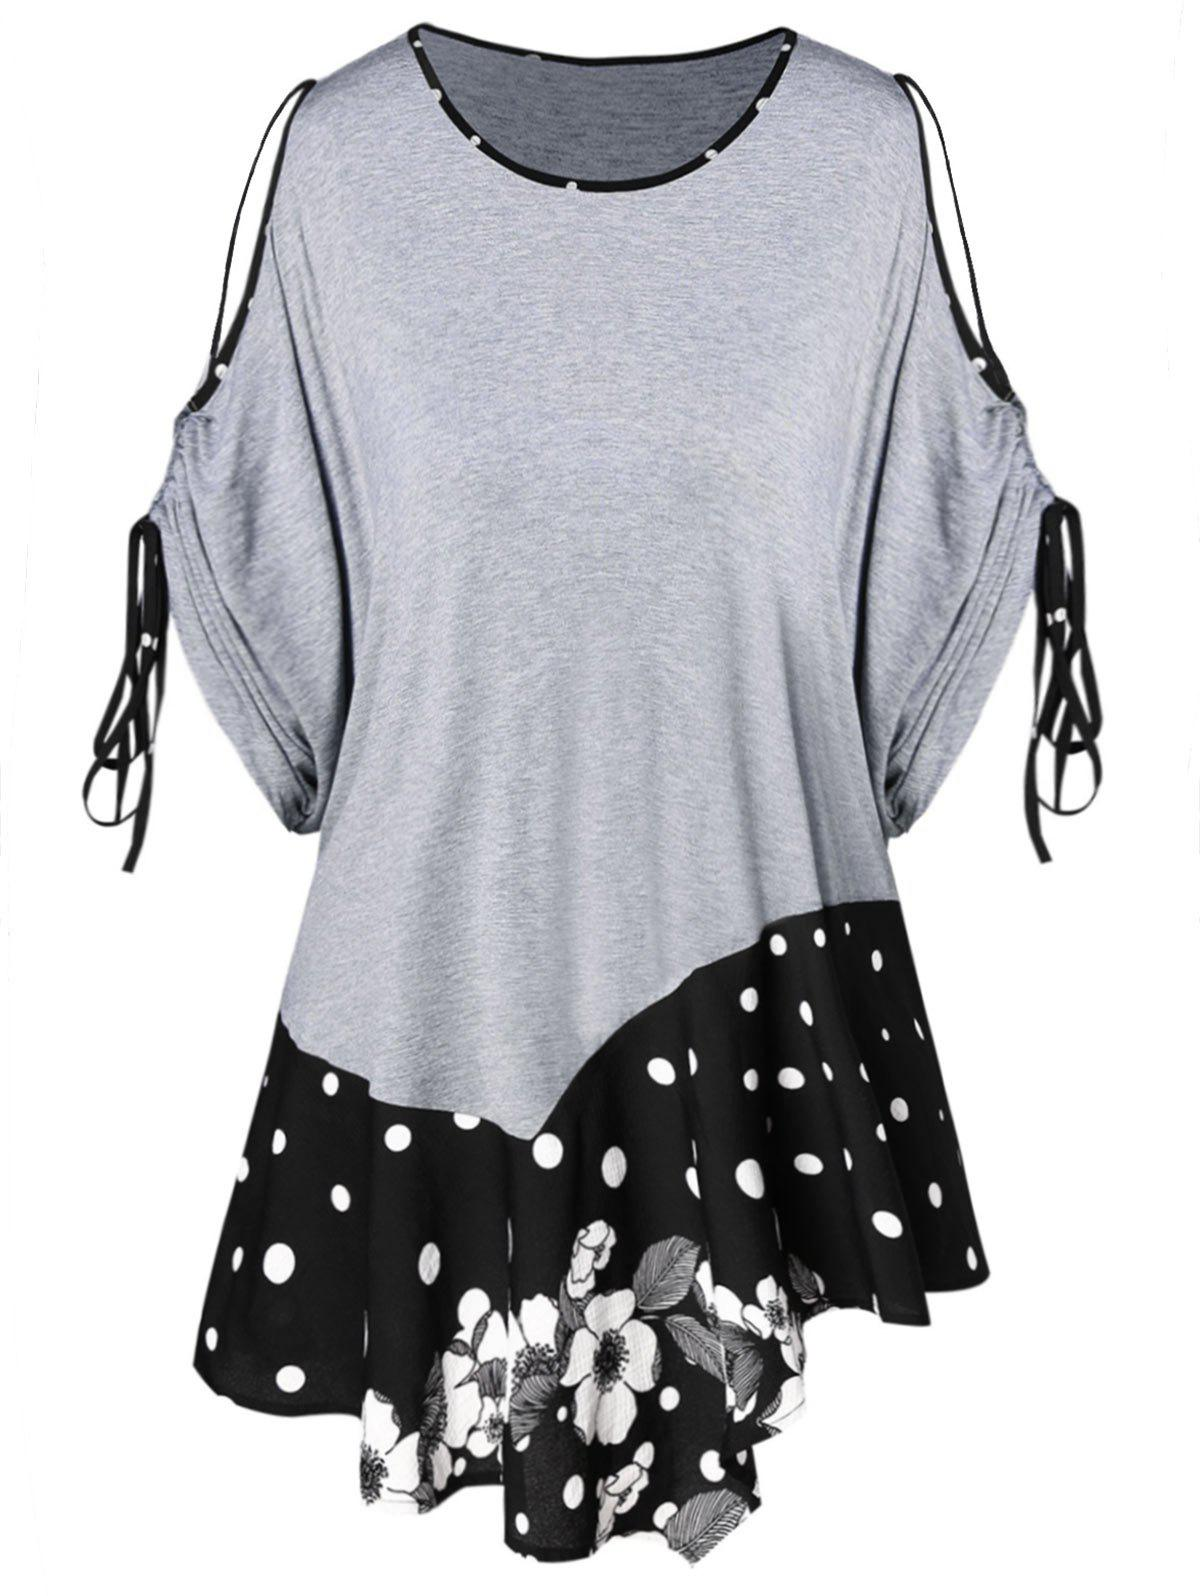 90d912e18f4 Outfit Plus Size Cut Out Drawstring Sleeve Polka Dot T-shirt